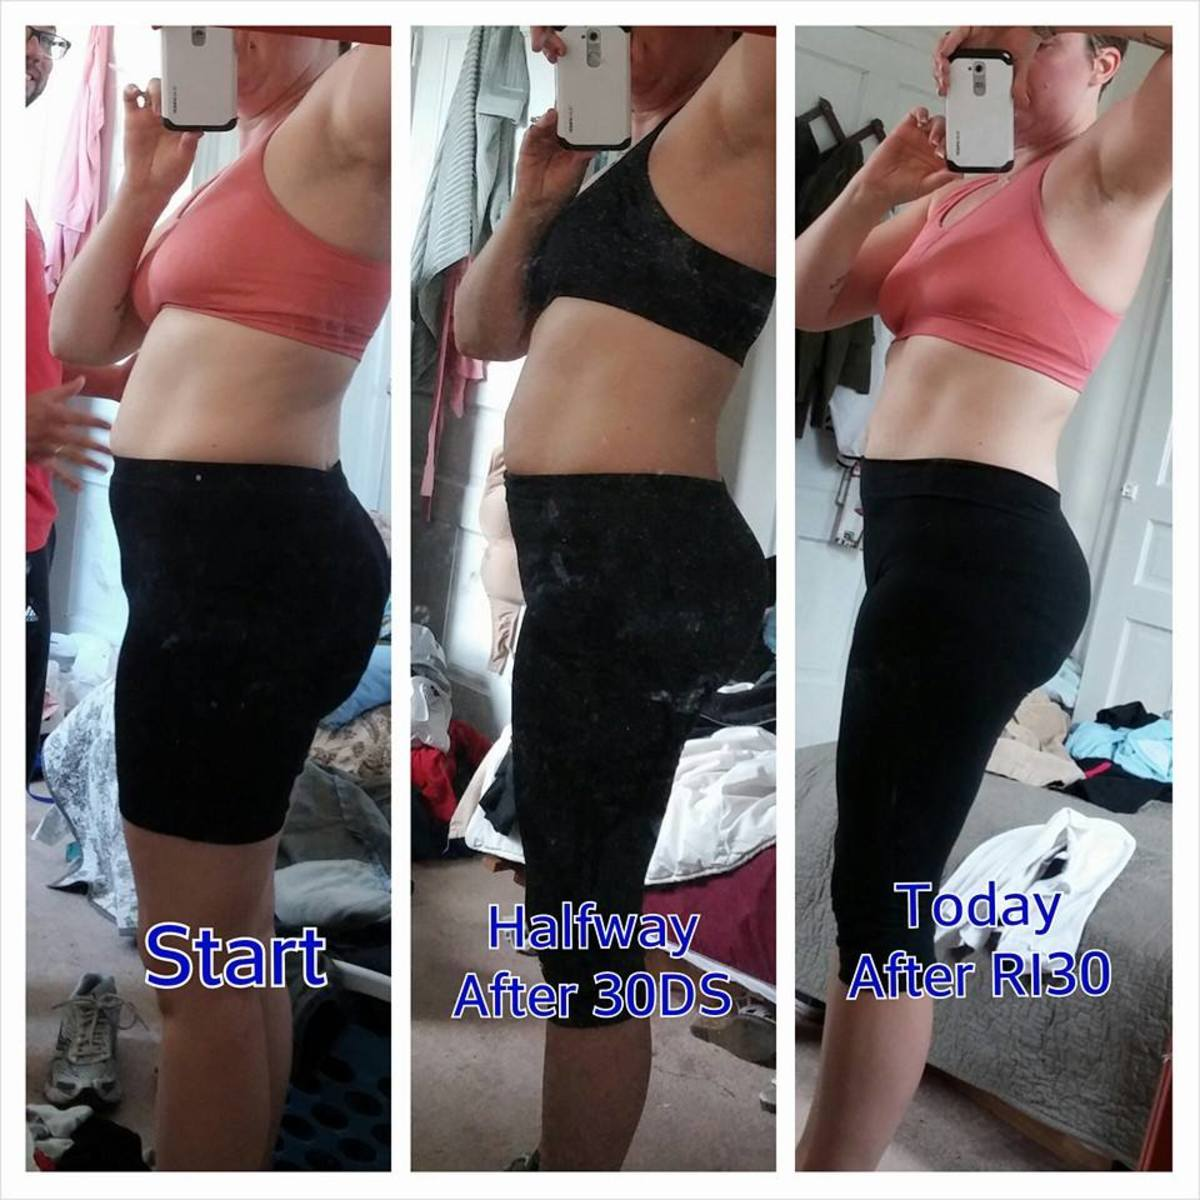 I tarted the 30-Day Shred on April 20 and ended on May 27th. I started Ripped in 30 on May 28th and ended on June 29th.